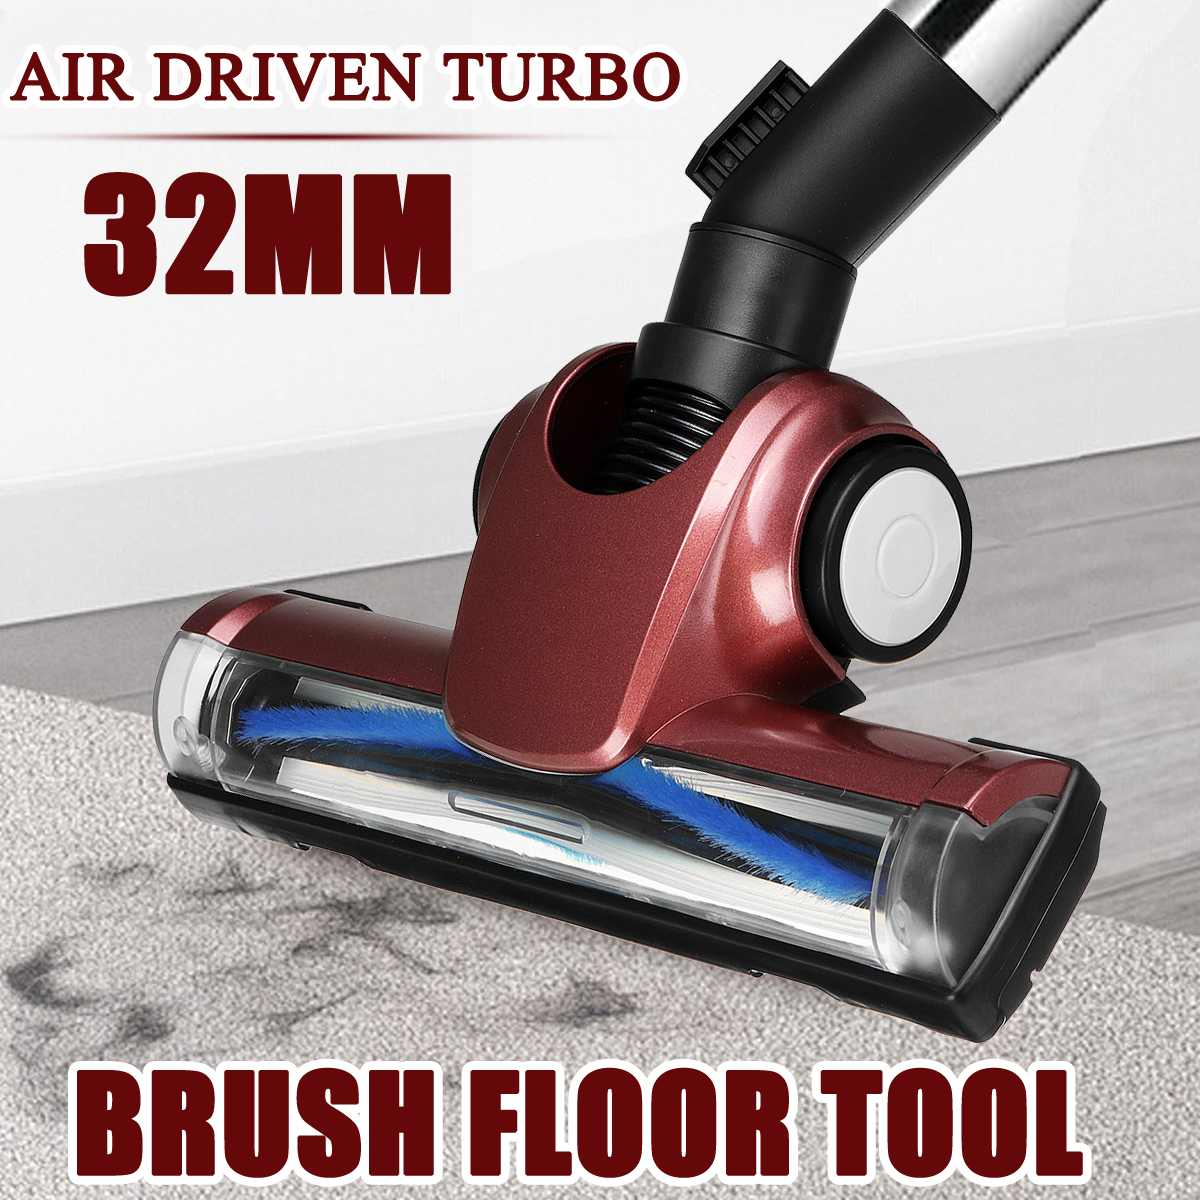 32mm Vacuum Cleaner Brush Floor Cleaner Head Air Driven Vacuum Turbo Nozzle Carpet Floor Tools For Dyson DC52 DC58 DC59 V6 DC62 1pcs vacuum cleaner storage package for dyson v6 v7 v8 dc62 suction head storage bag